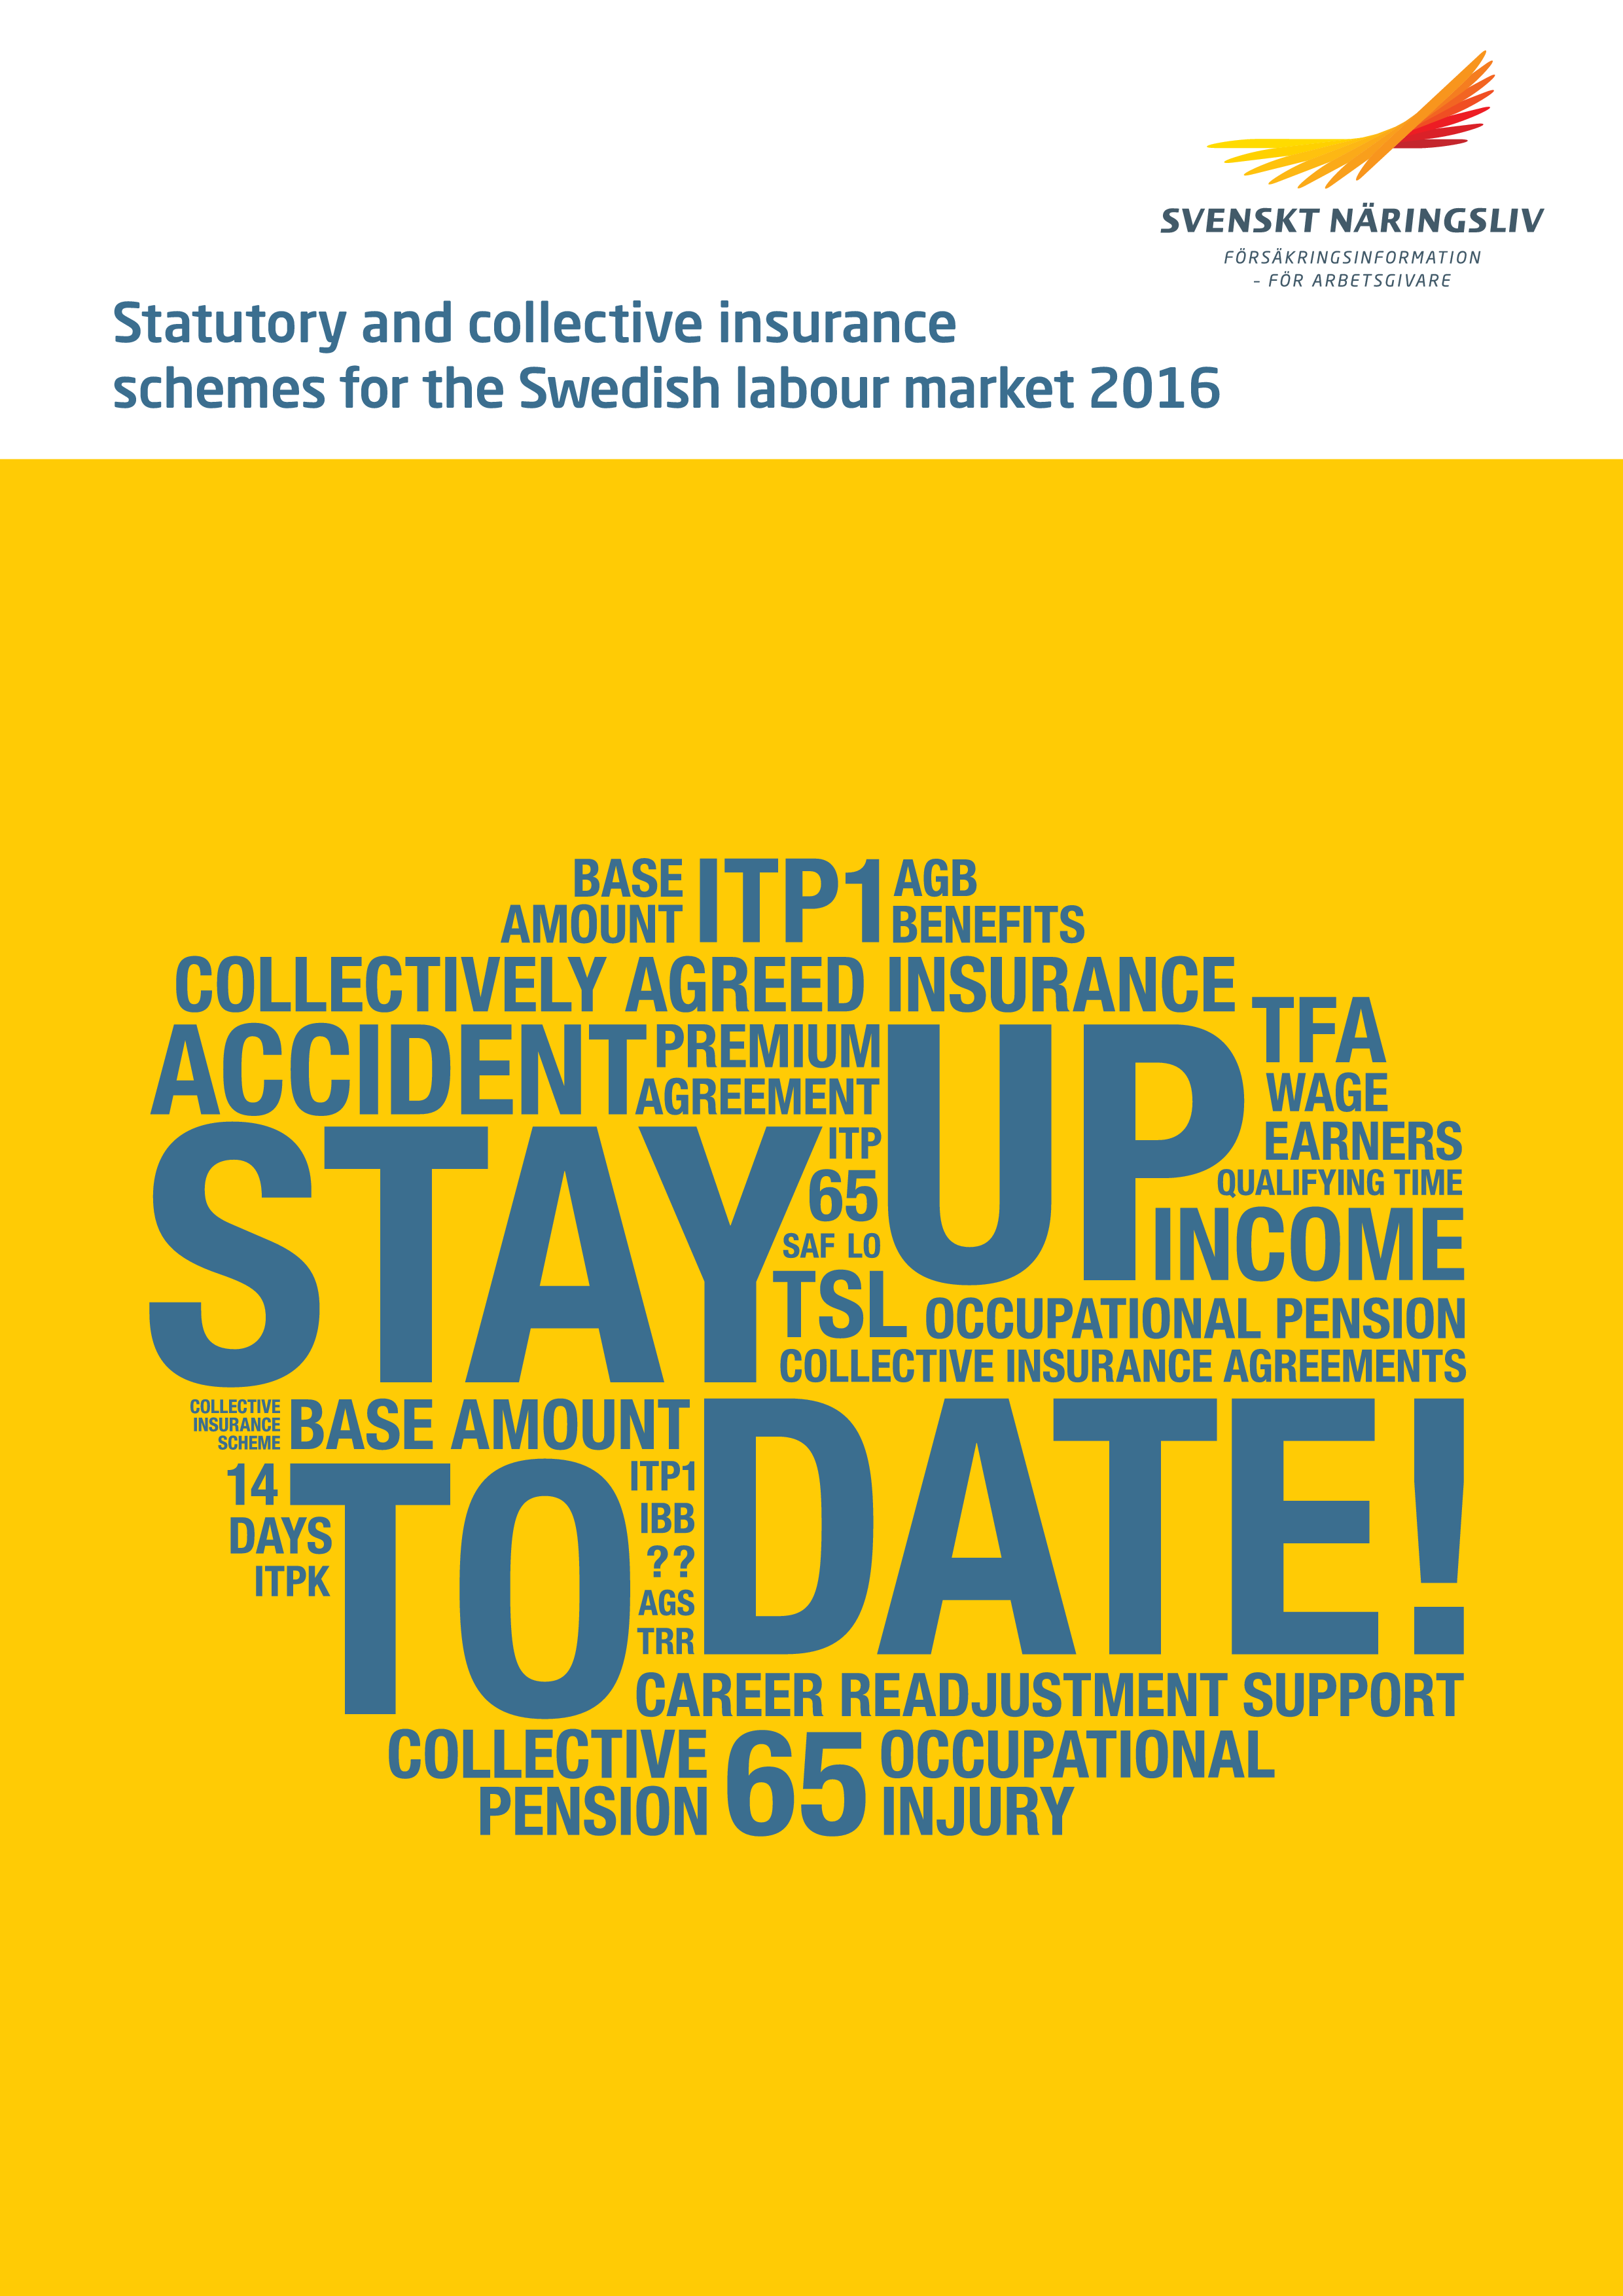 Statutory and collective insurance schemes for the Swedish labour market 2016